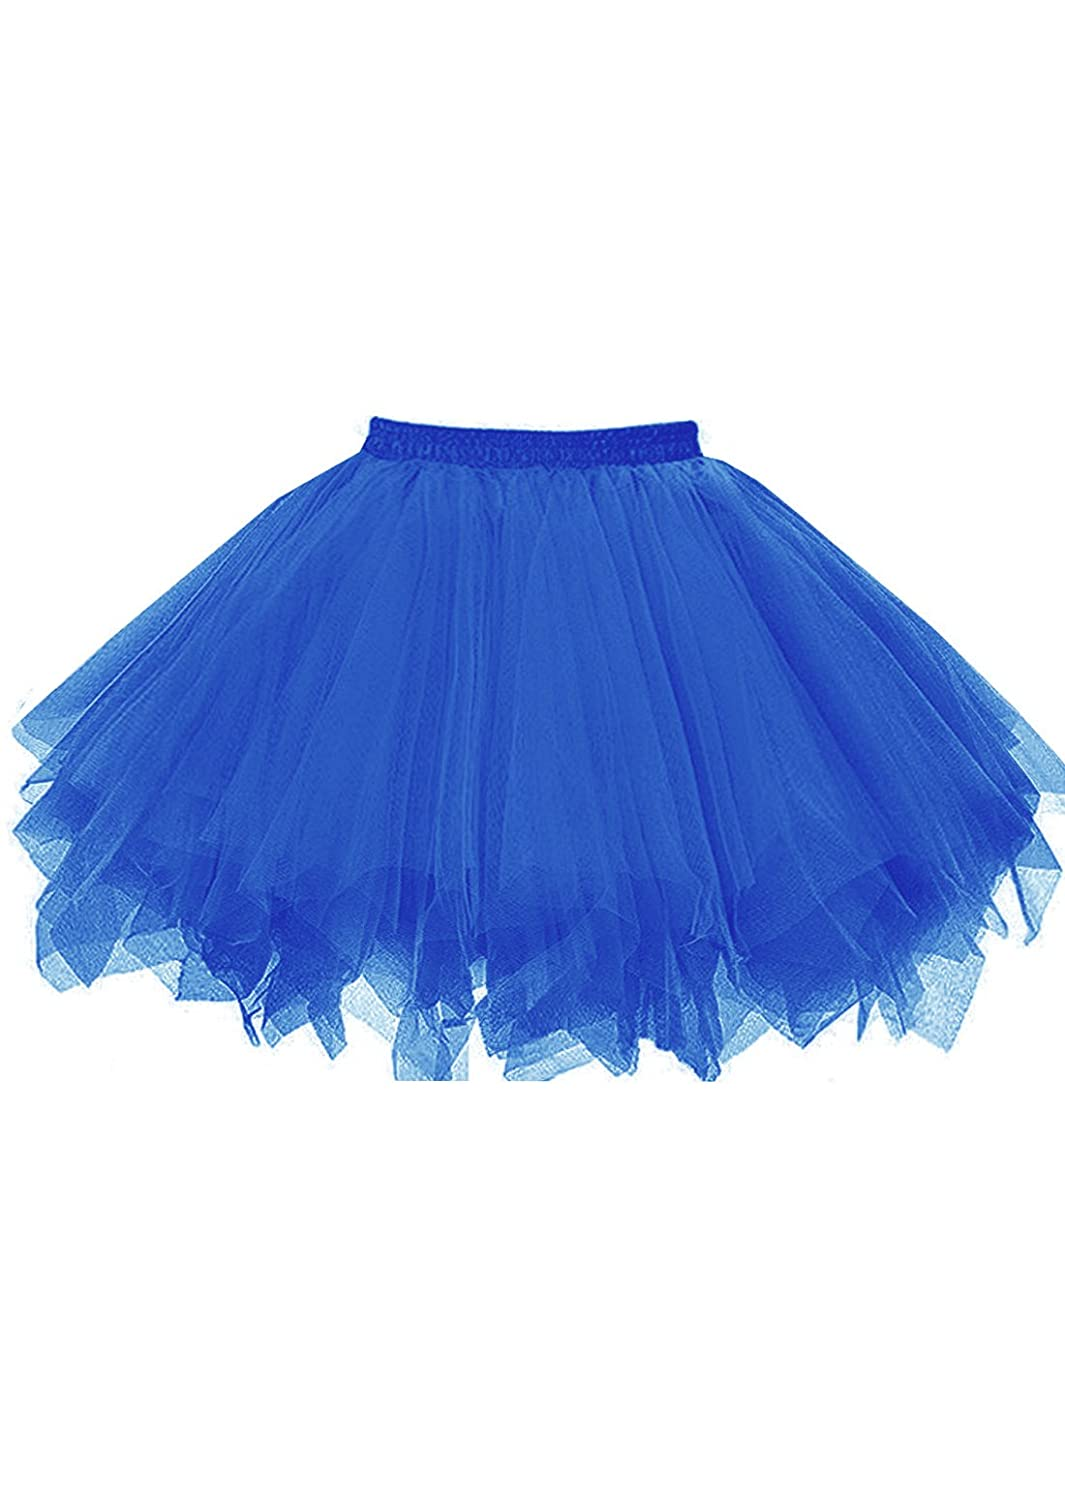 Royal bluee malishow Womens Short Tutu Costume Tulle Skirt Dance Multicolord Party Petticoat